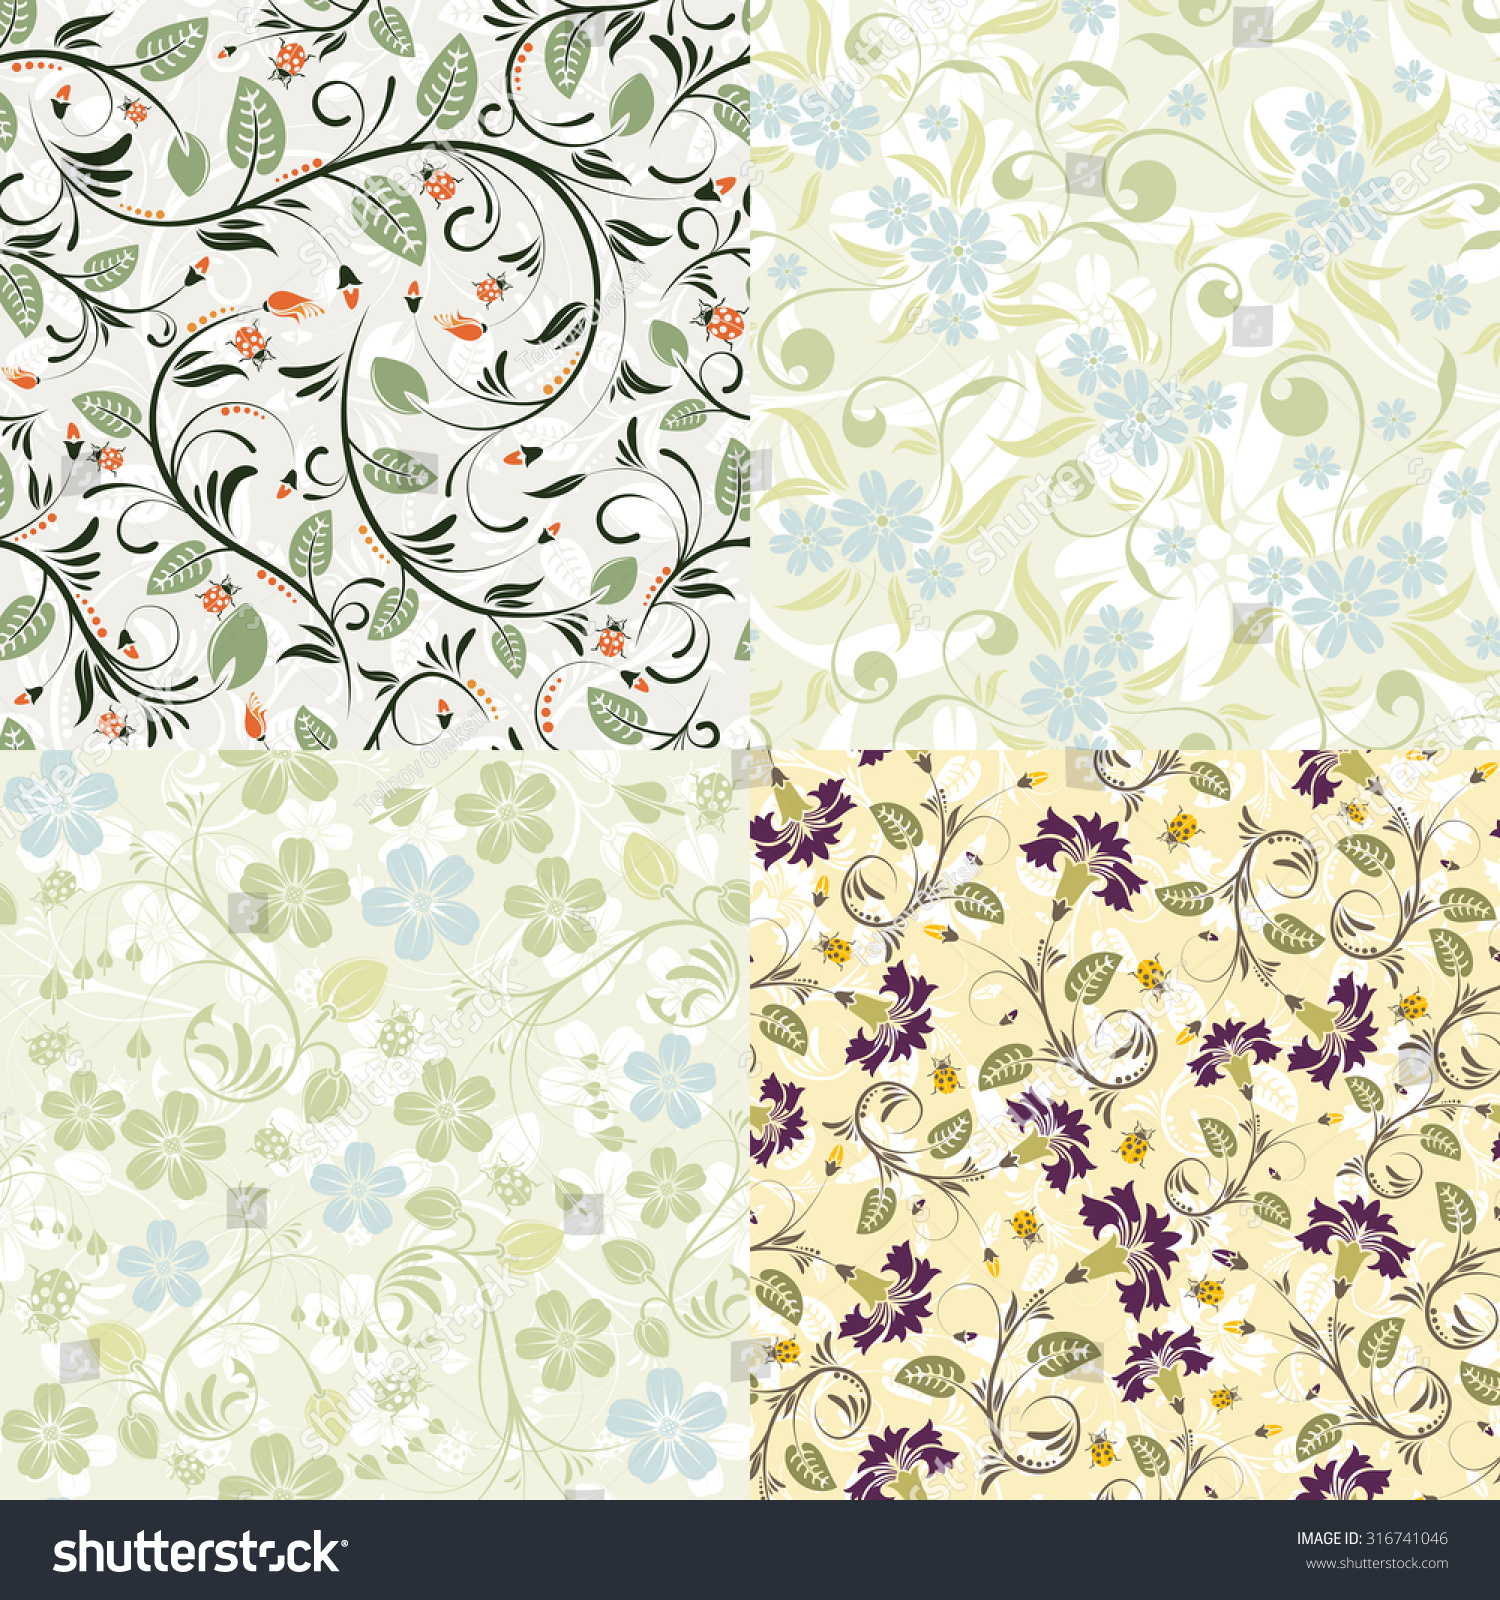 4 flower seamless patterns with ladybug vector template for cover